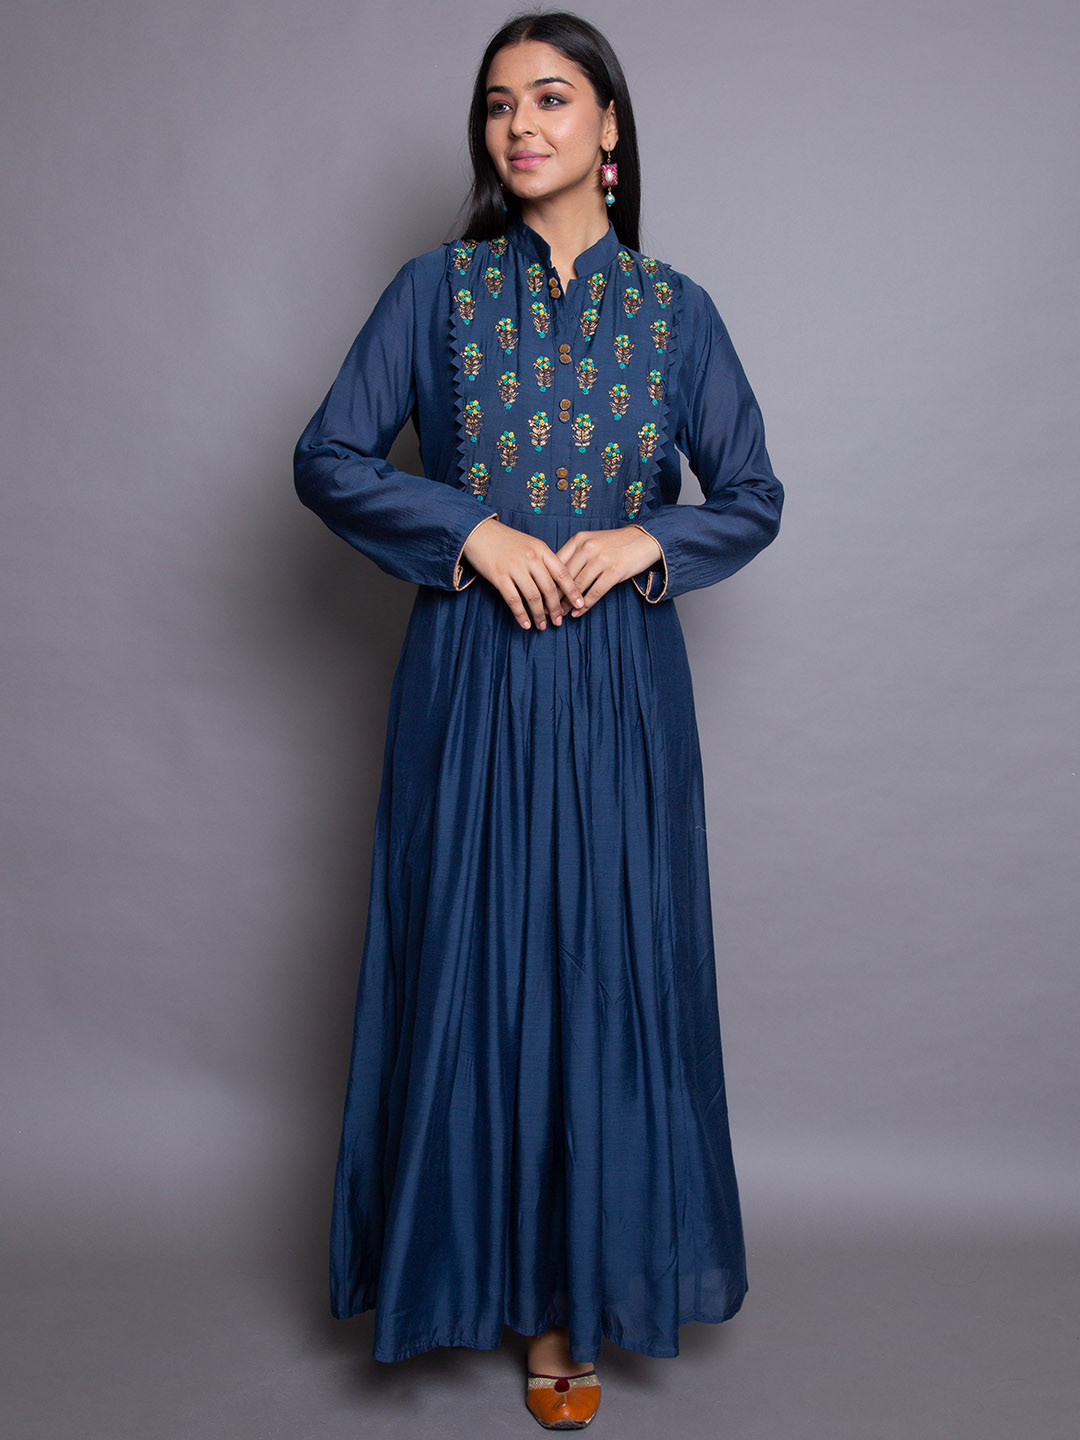 NAVY BLUE FRILLED GOWN